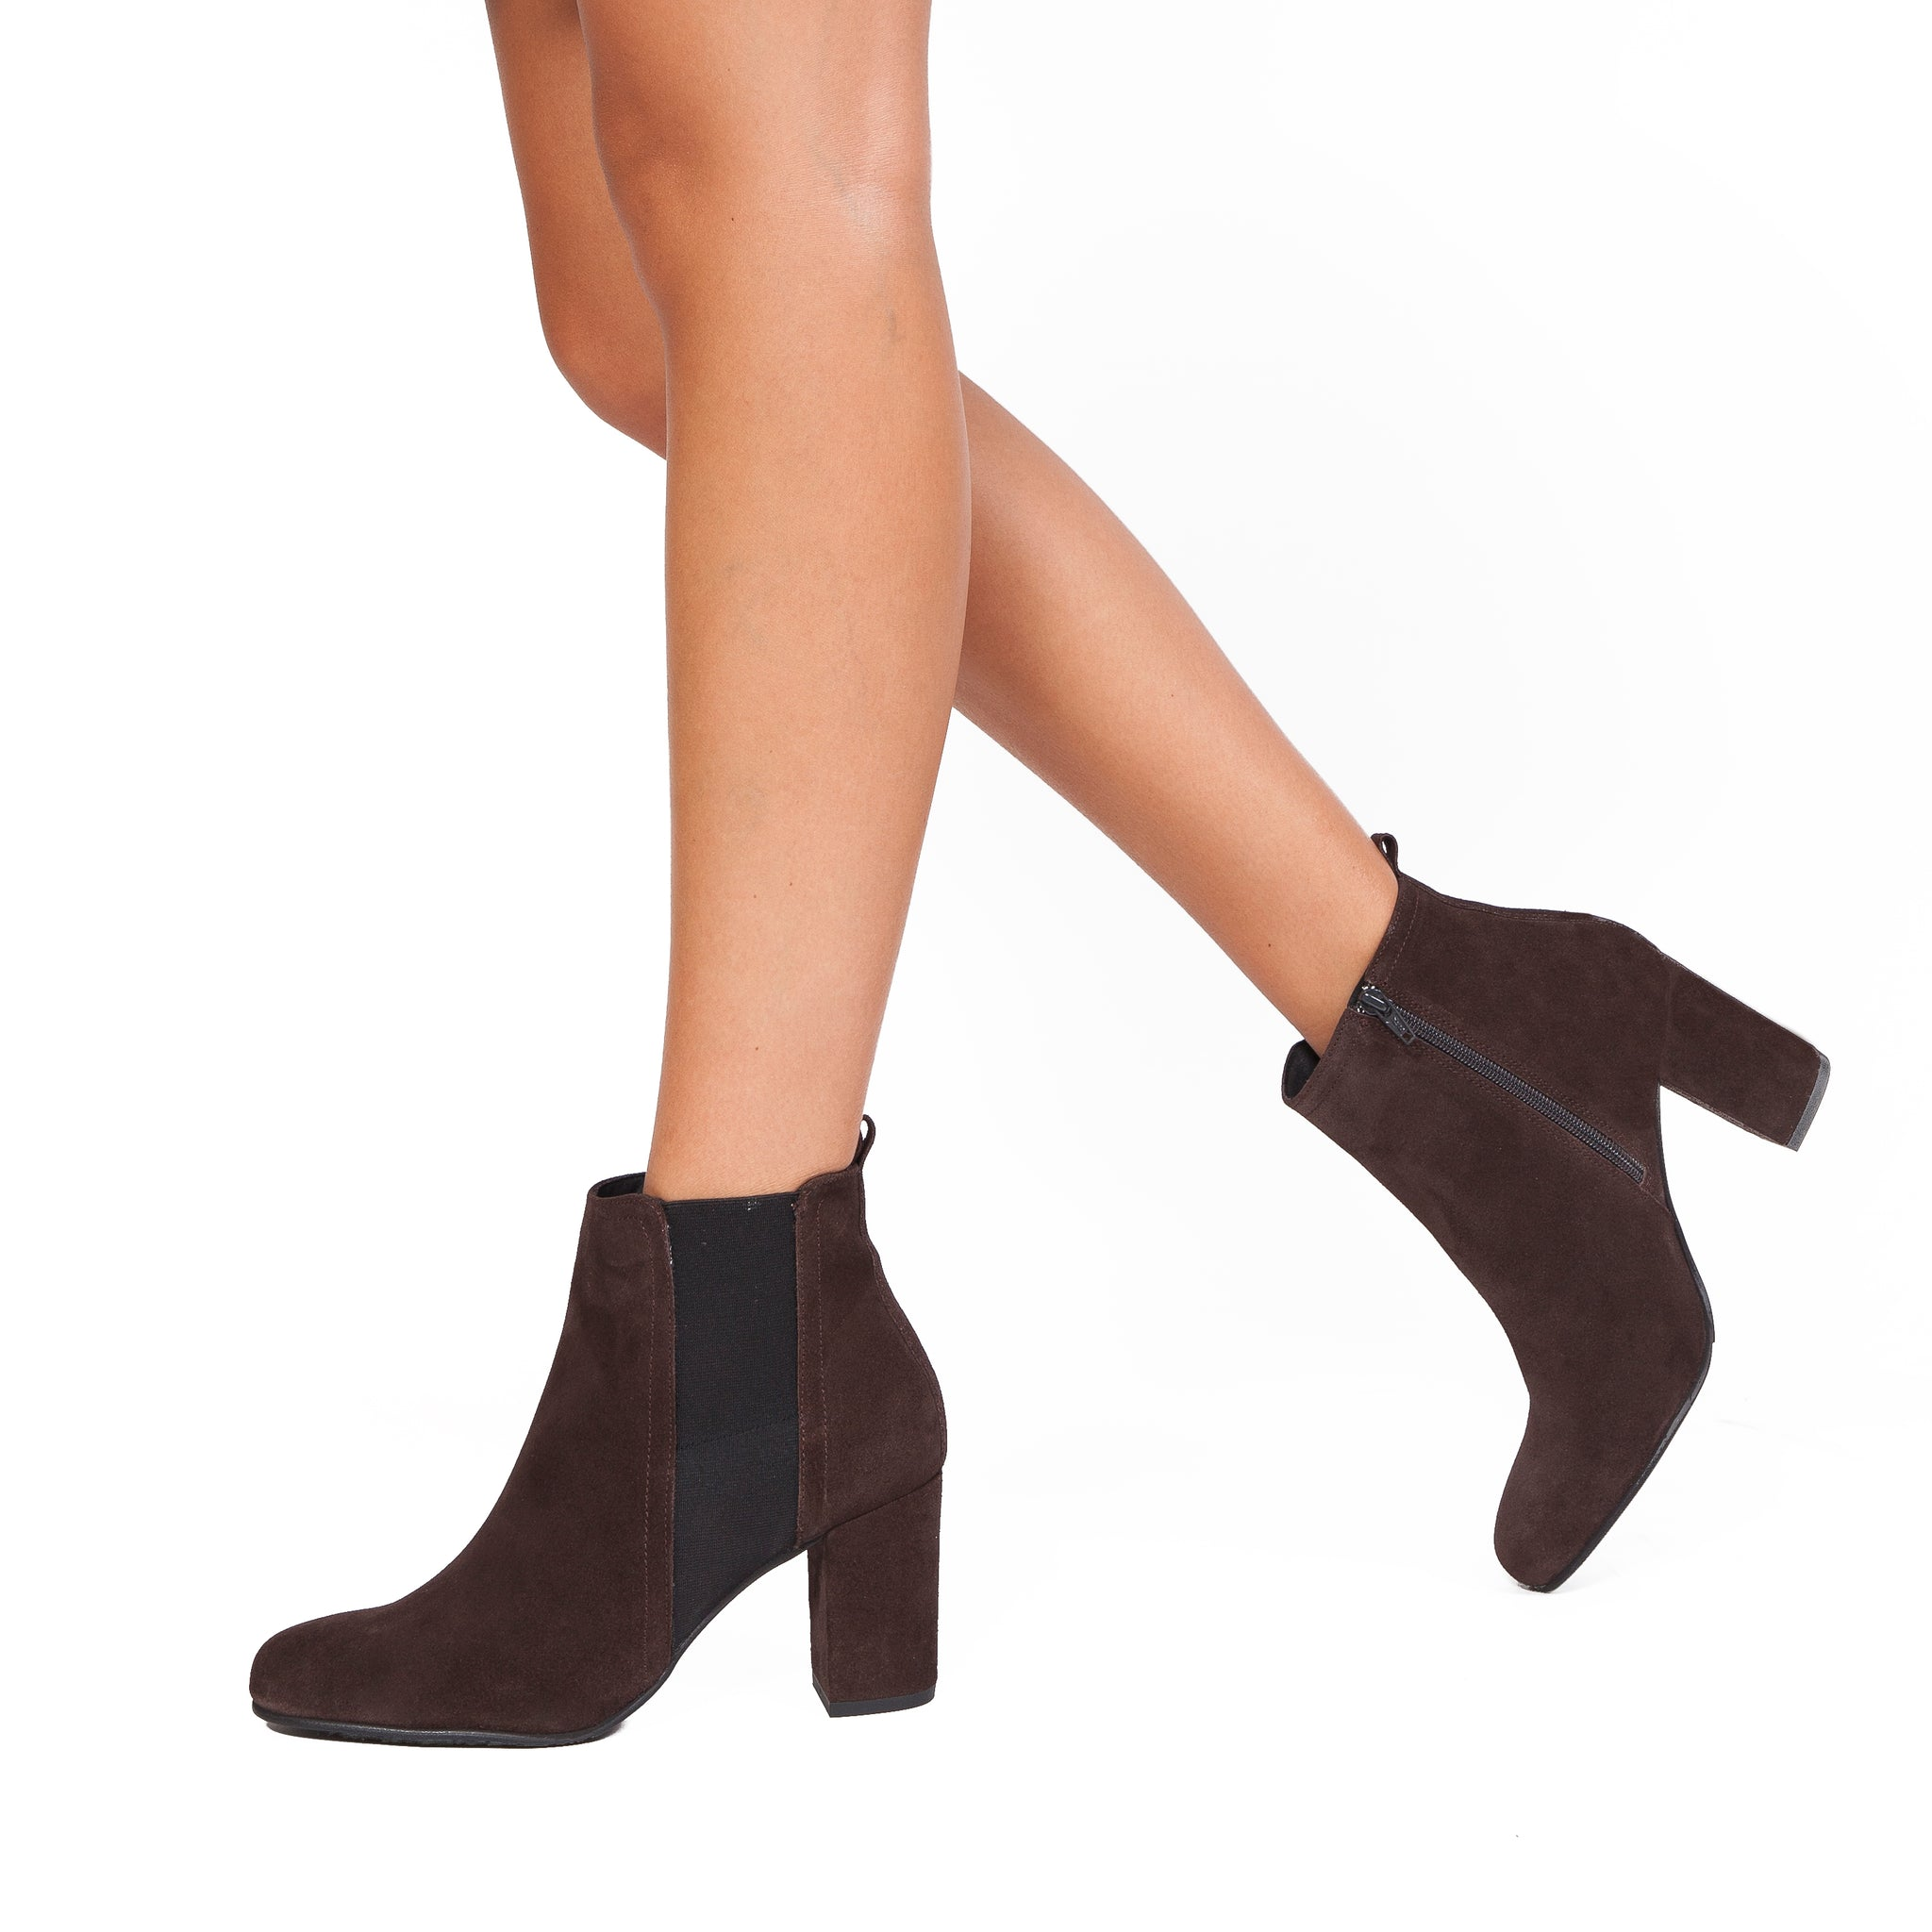 BOTTINES URBAN à talon chocolat miMaO – miMaO FR 7cdd94903b17